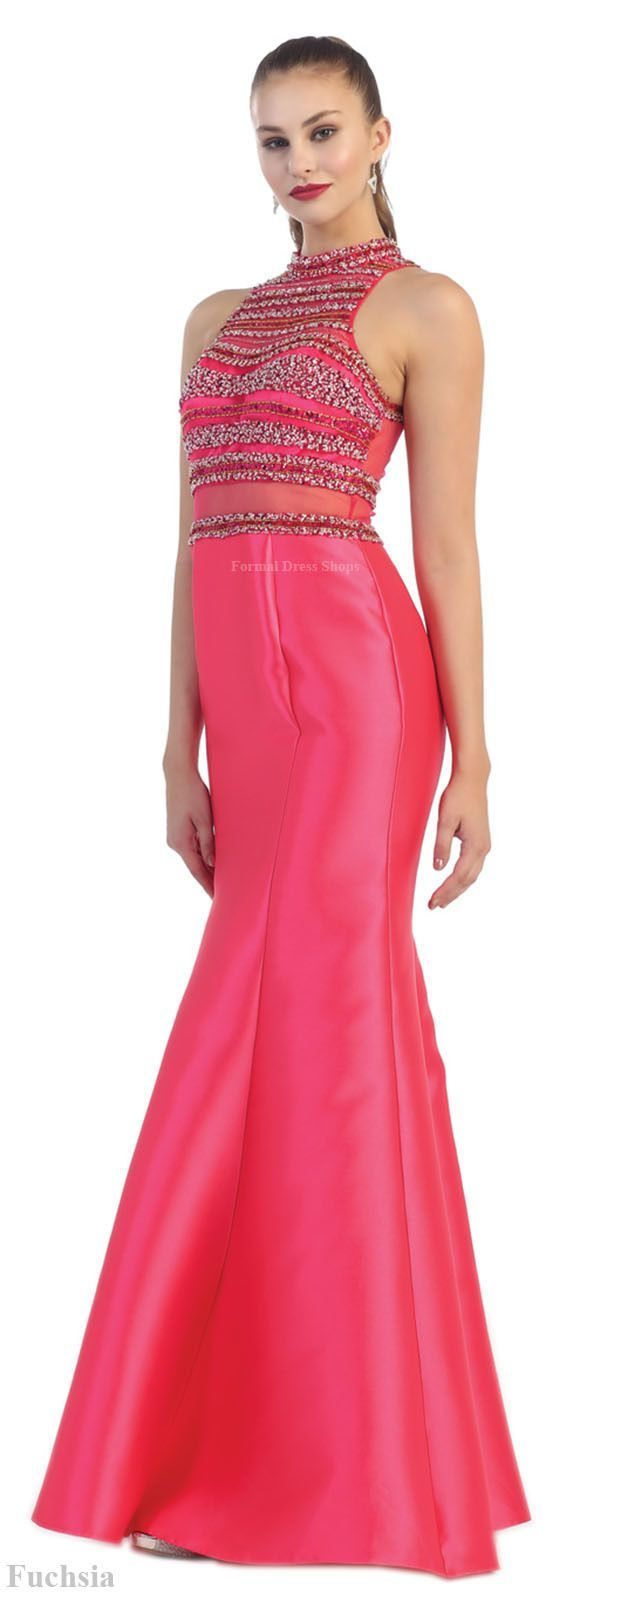 Formal evening long gowns mermaid dress special occasion prom red